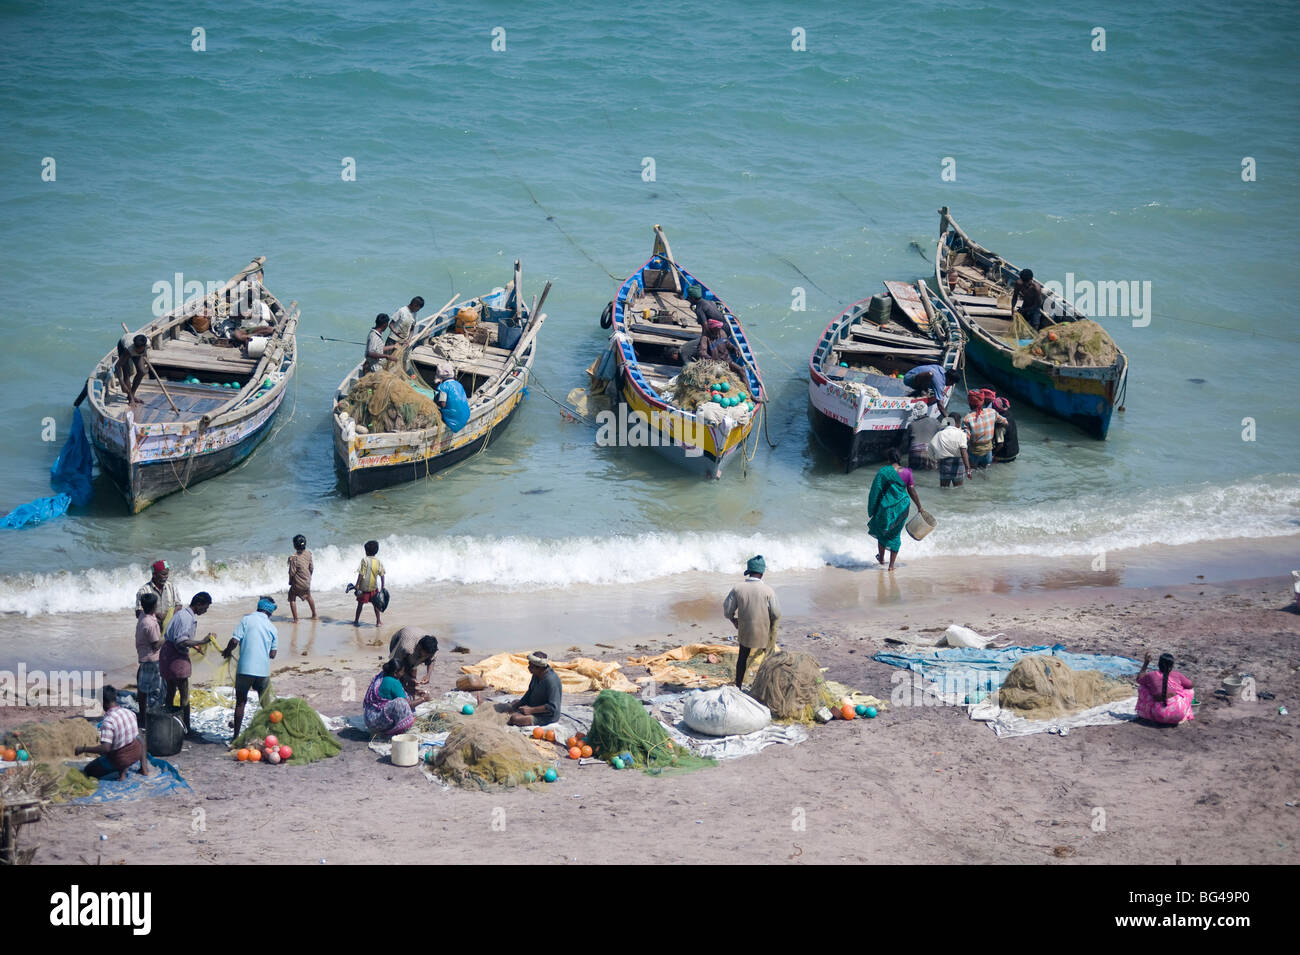 Everybody joins in as the morning's catch of fish is unloaded, Dhanushkodi, Tamil Nadu, India, Asia - Stock Image